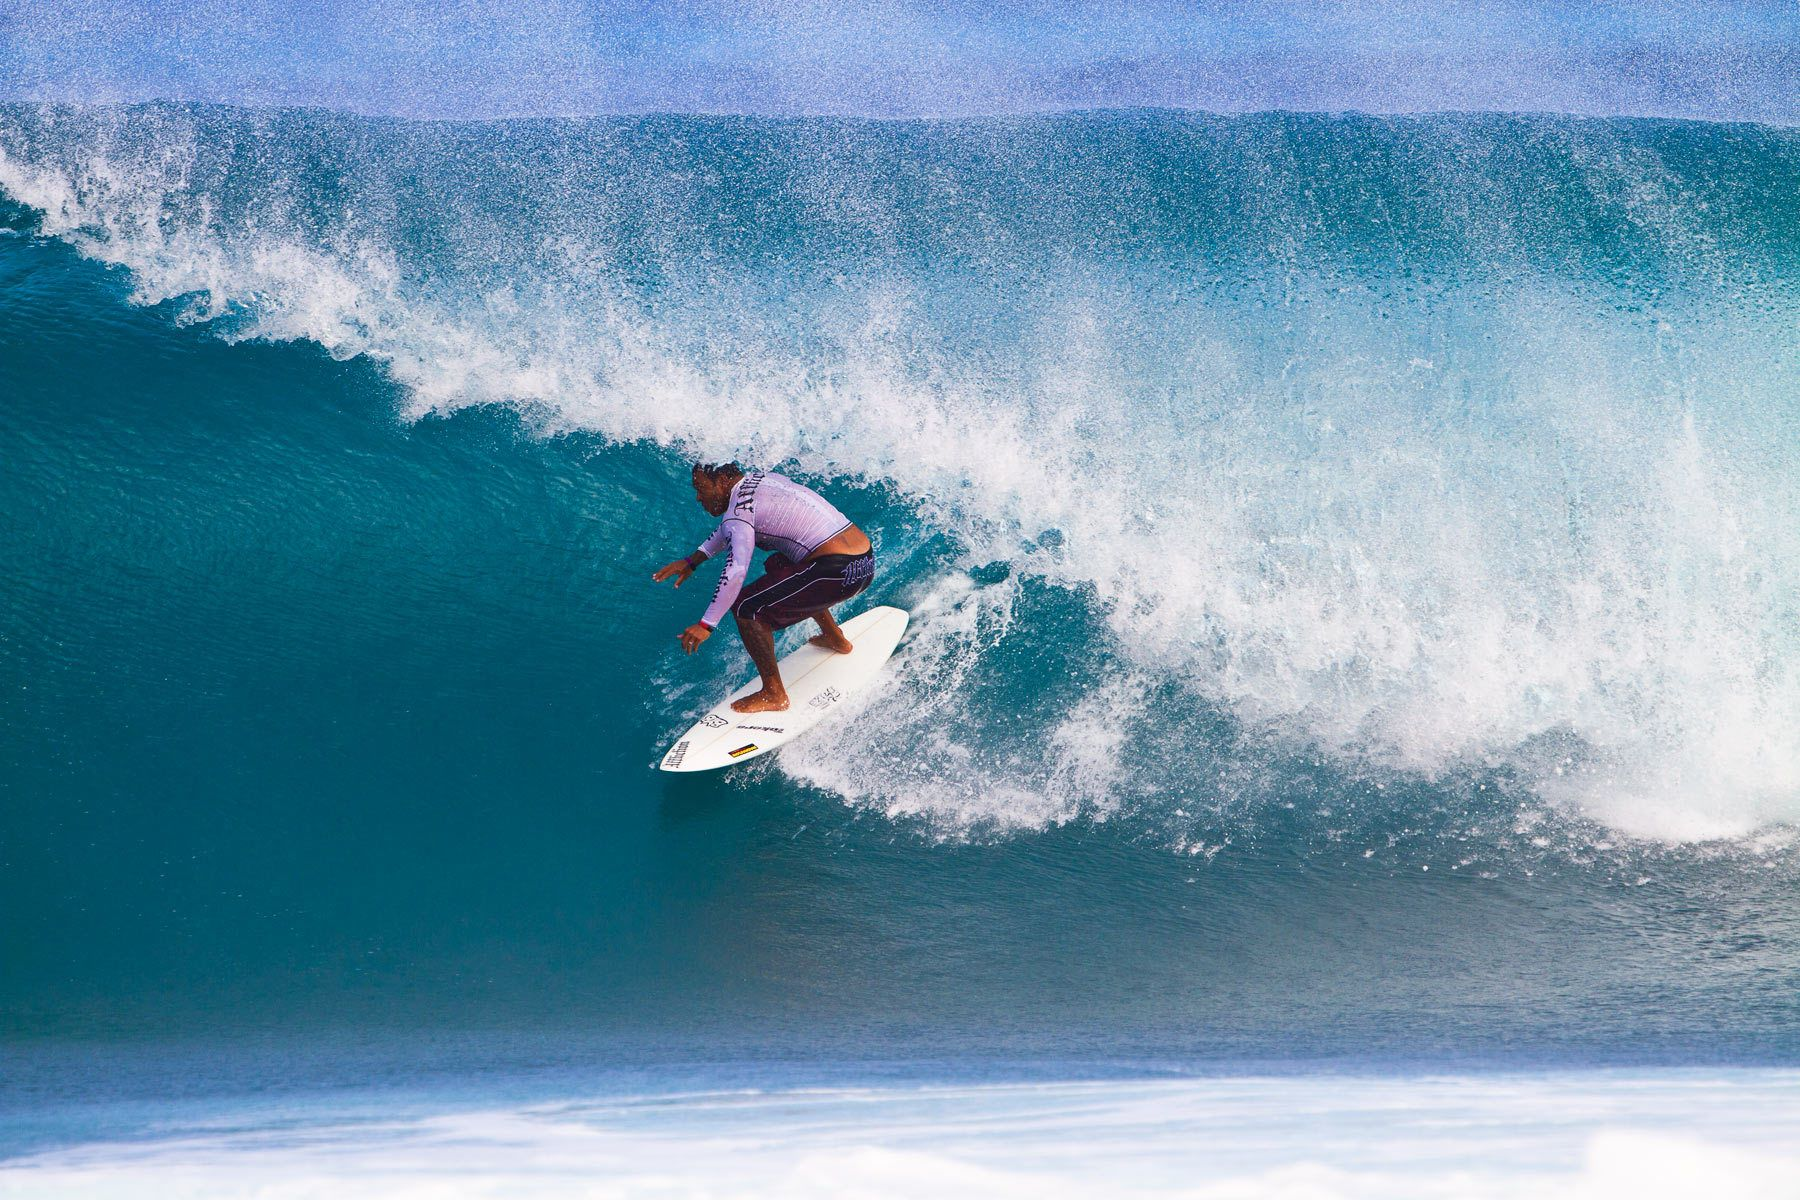 Sunny GarciaWorld Champion Surfing LegendBackdoor / Banzai PipelineNorth Shore, OahuHawaii